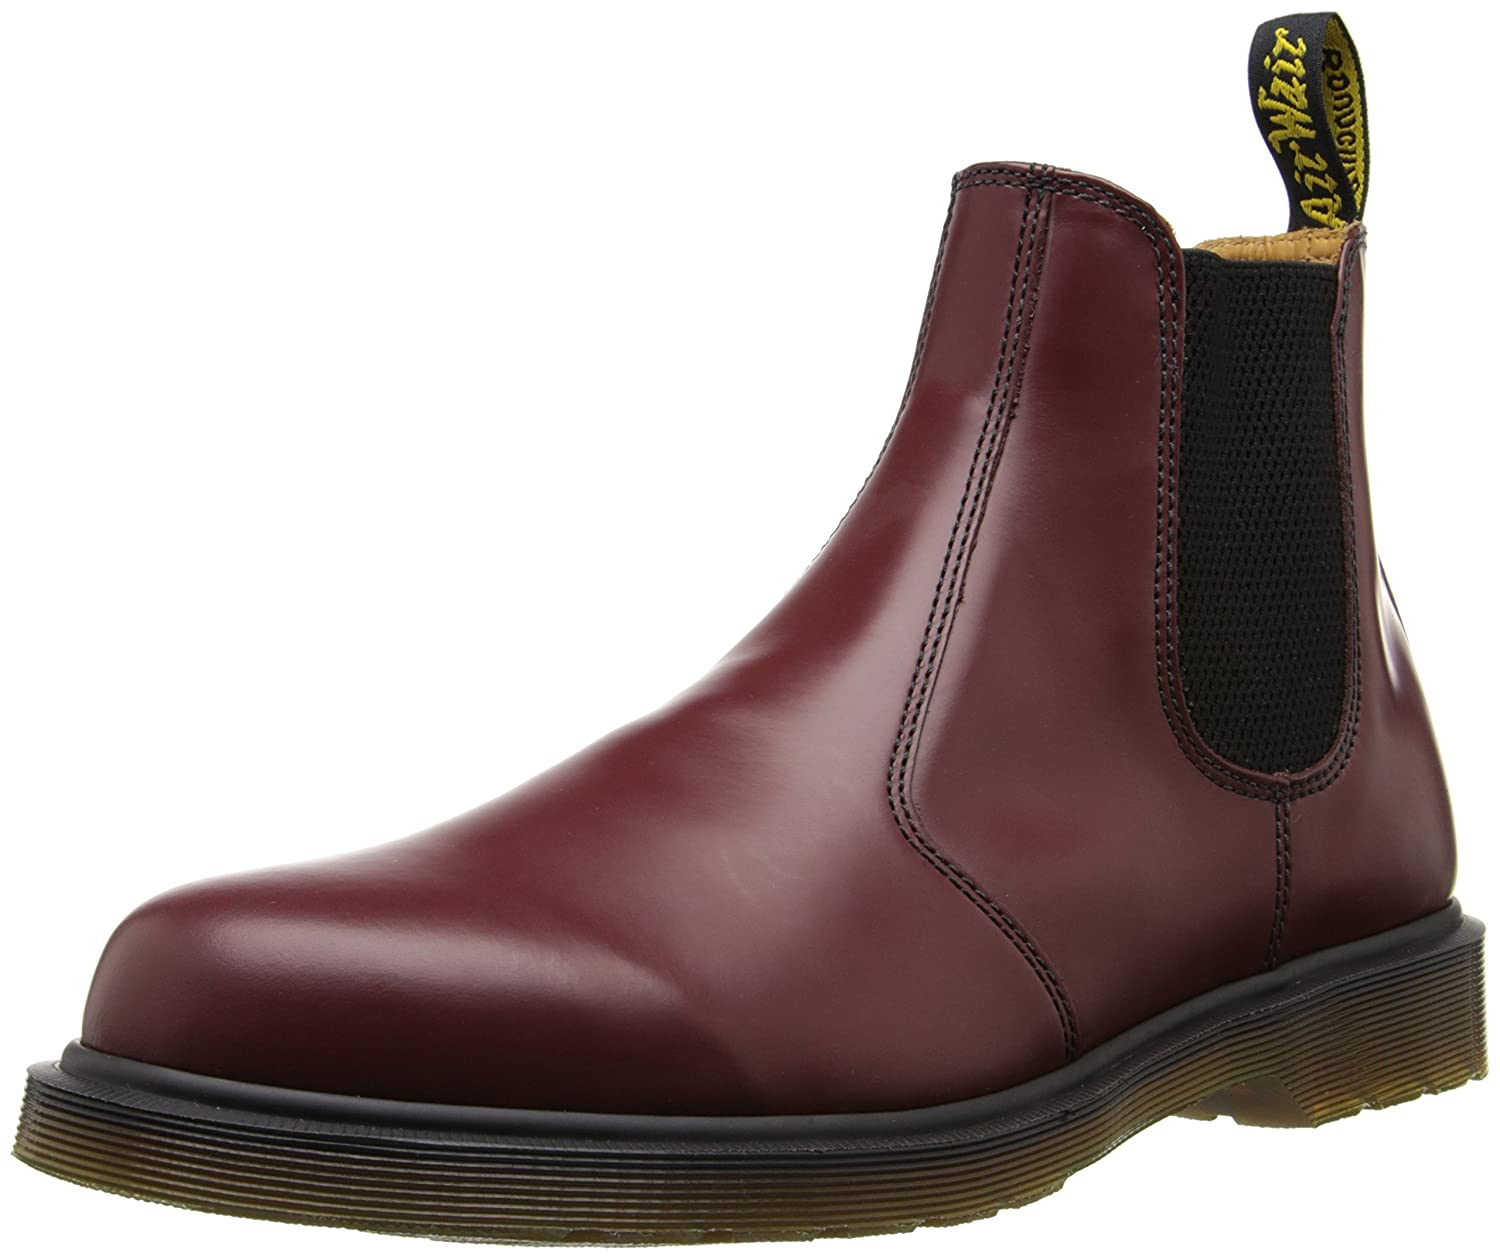 Dr. Martens 2976 Chelsea Boot,Black Smooth B001387T7A 7 UK/Women's 9 Men's 8 M US|Cherry Red Smooth